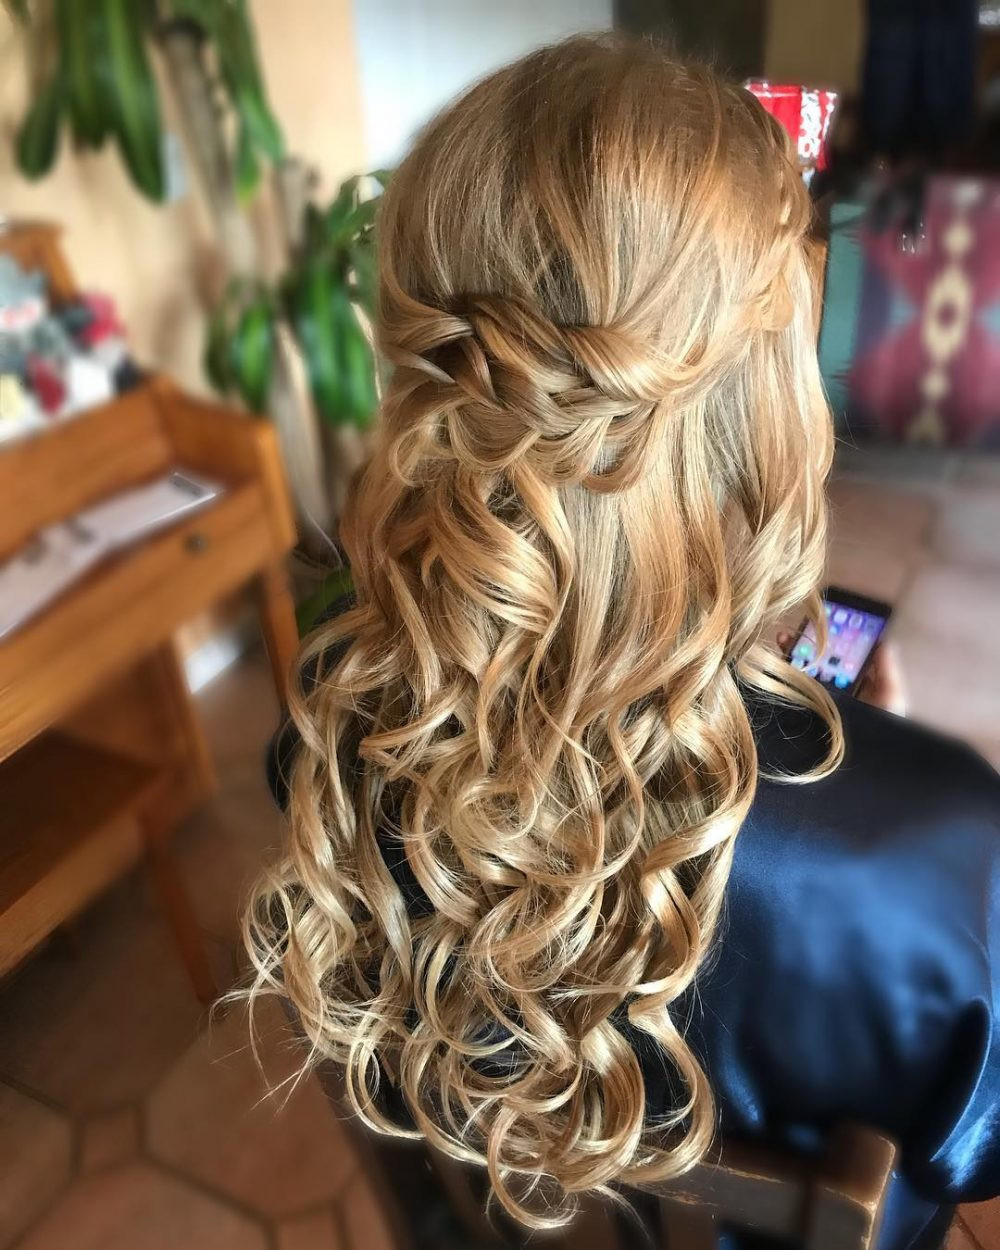 Best ideas about Hairstyles For Long Hair Wedding . Save or Pin 27 Gorgeous Wedding Hairstyles for Long Hair in 2019 Now.